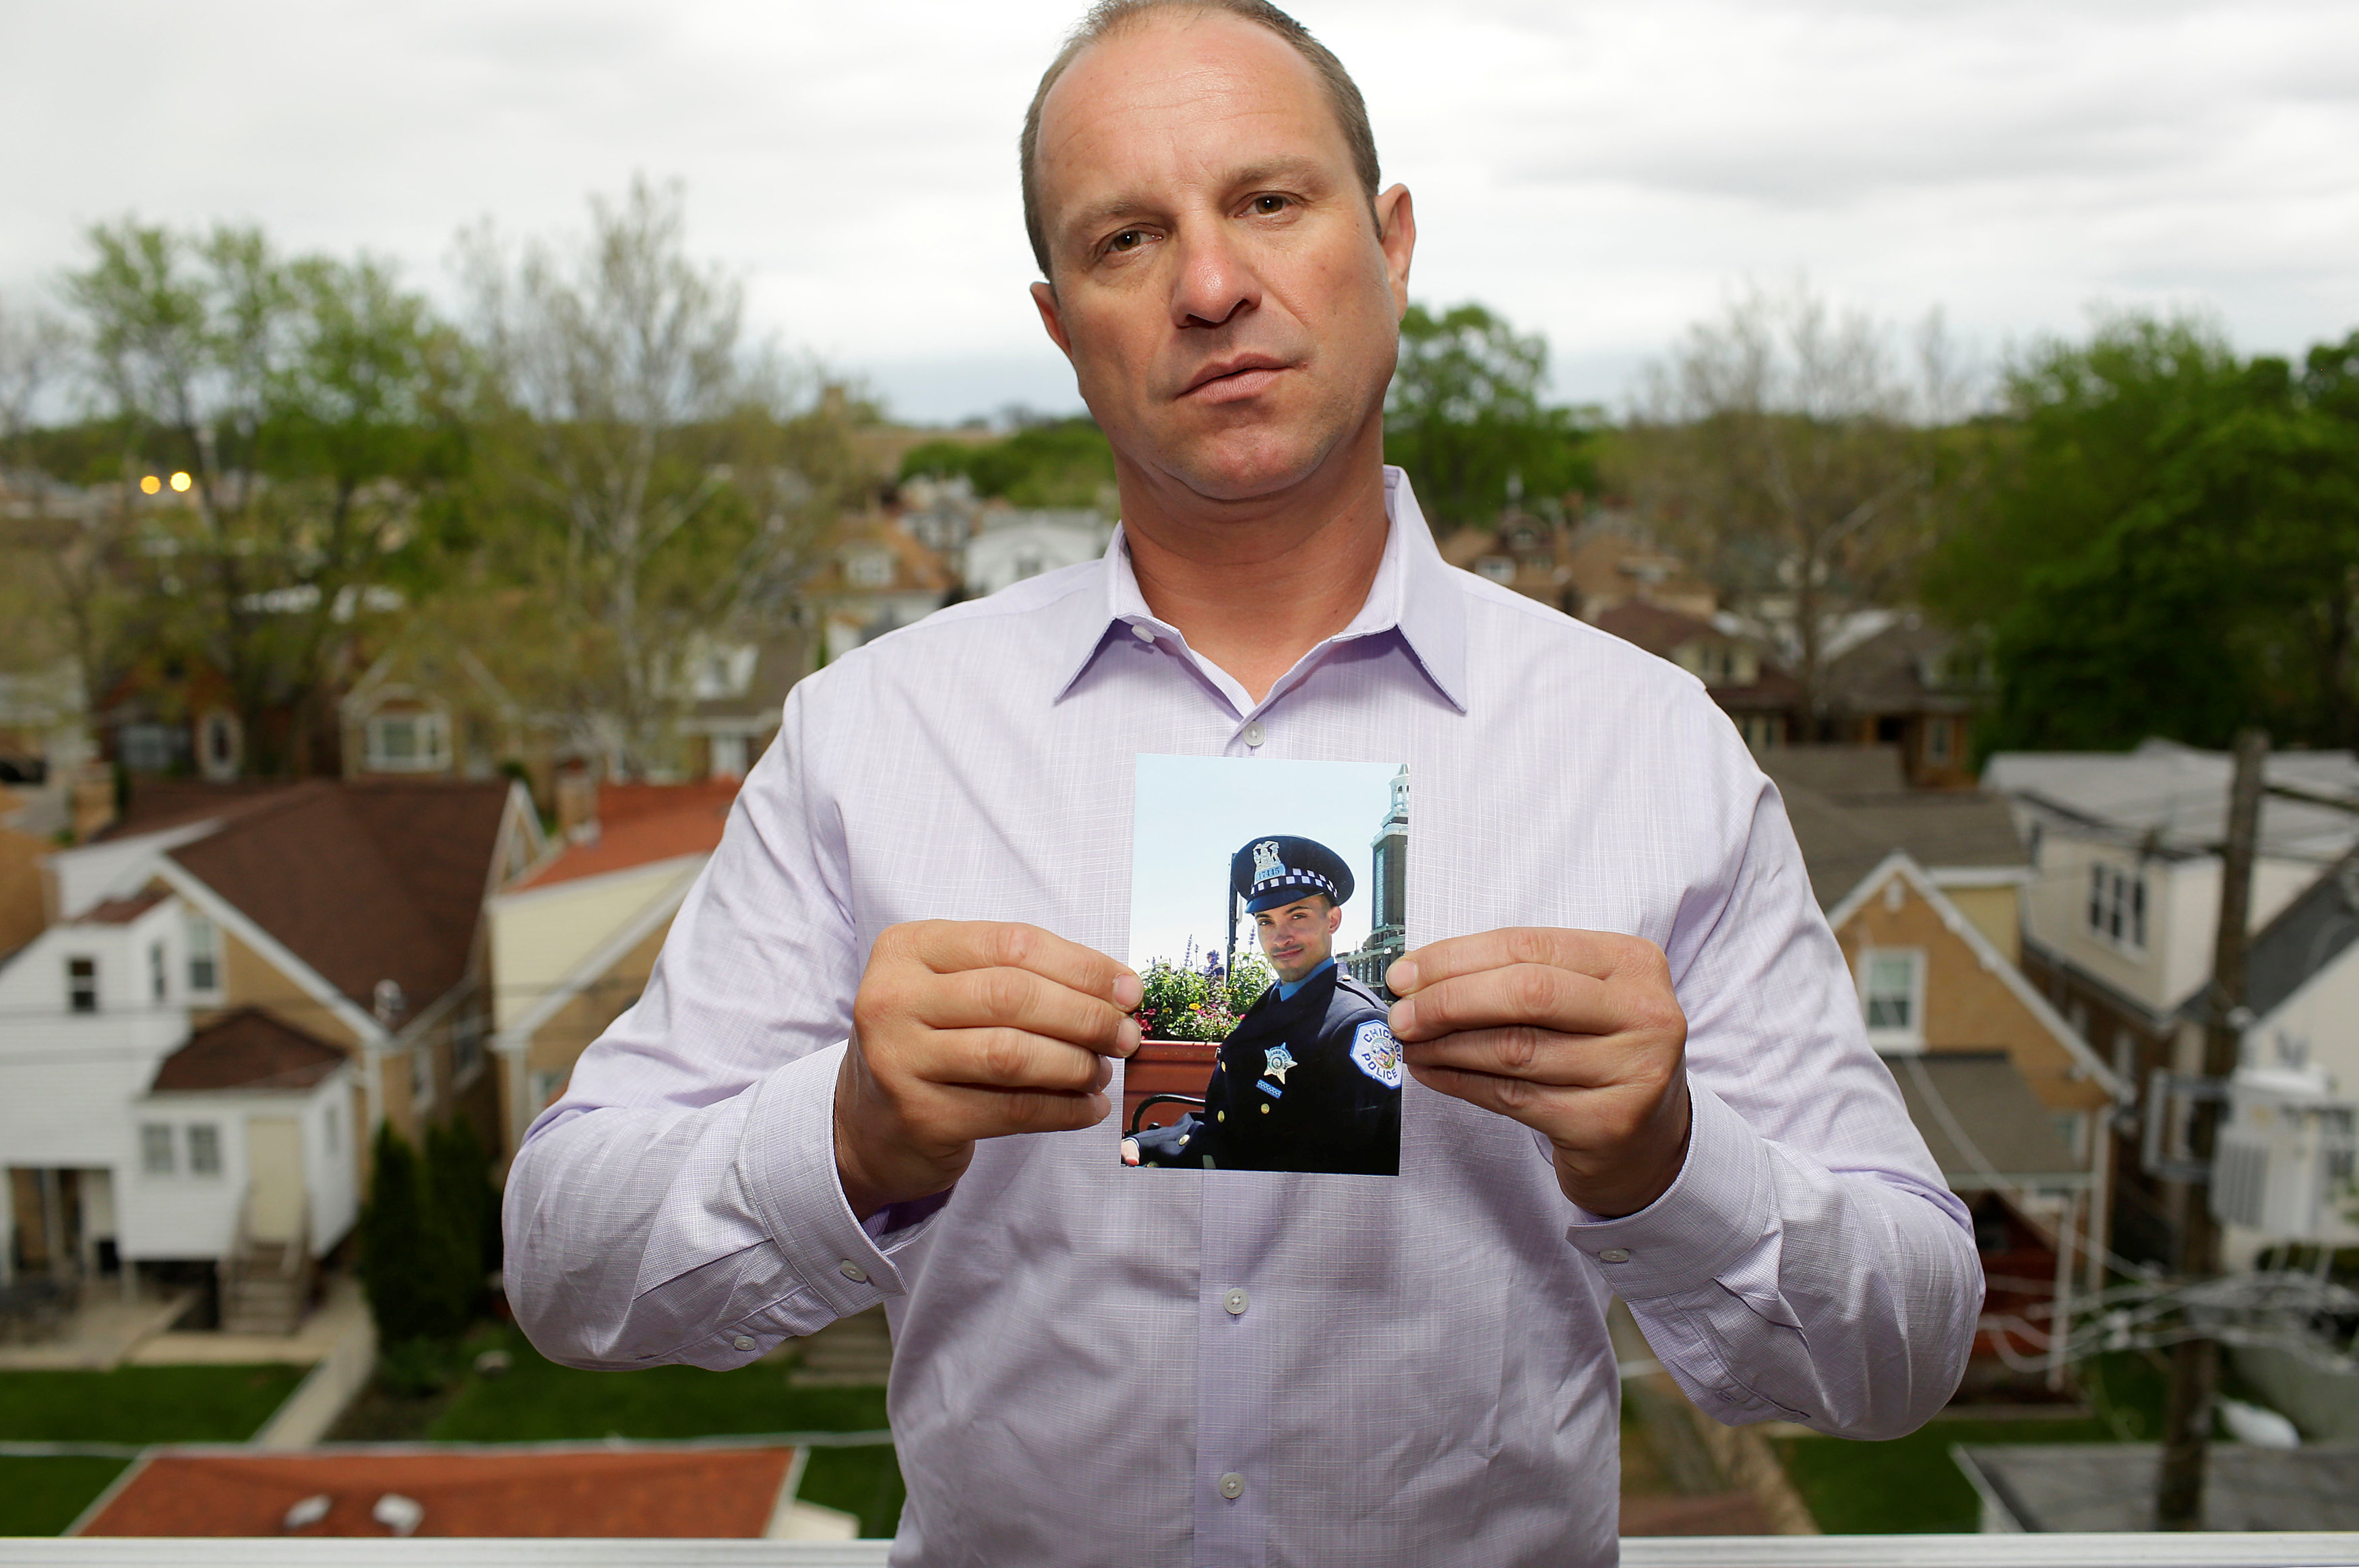 Ark Maciaszek poses with a photo of his cousin, former Chicago police officer and suicide victim Scott Tracz, at his home in Chicago, Illinois, U.S. May 2, 2017. Picture taken May 2, 2017. REUTERS/Joshua Lott